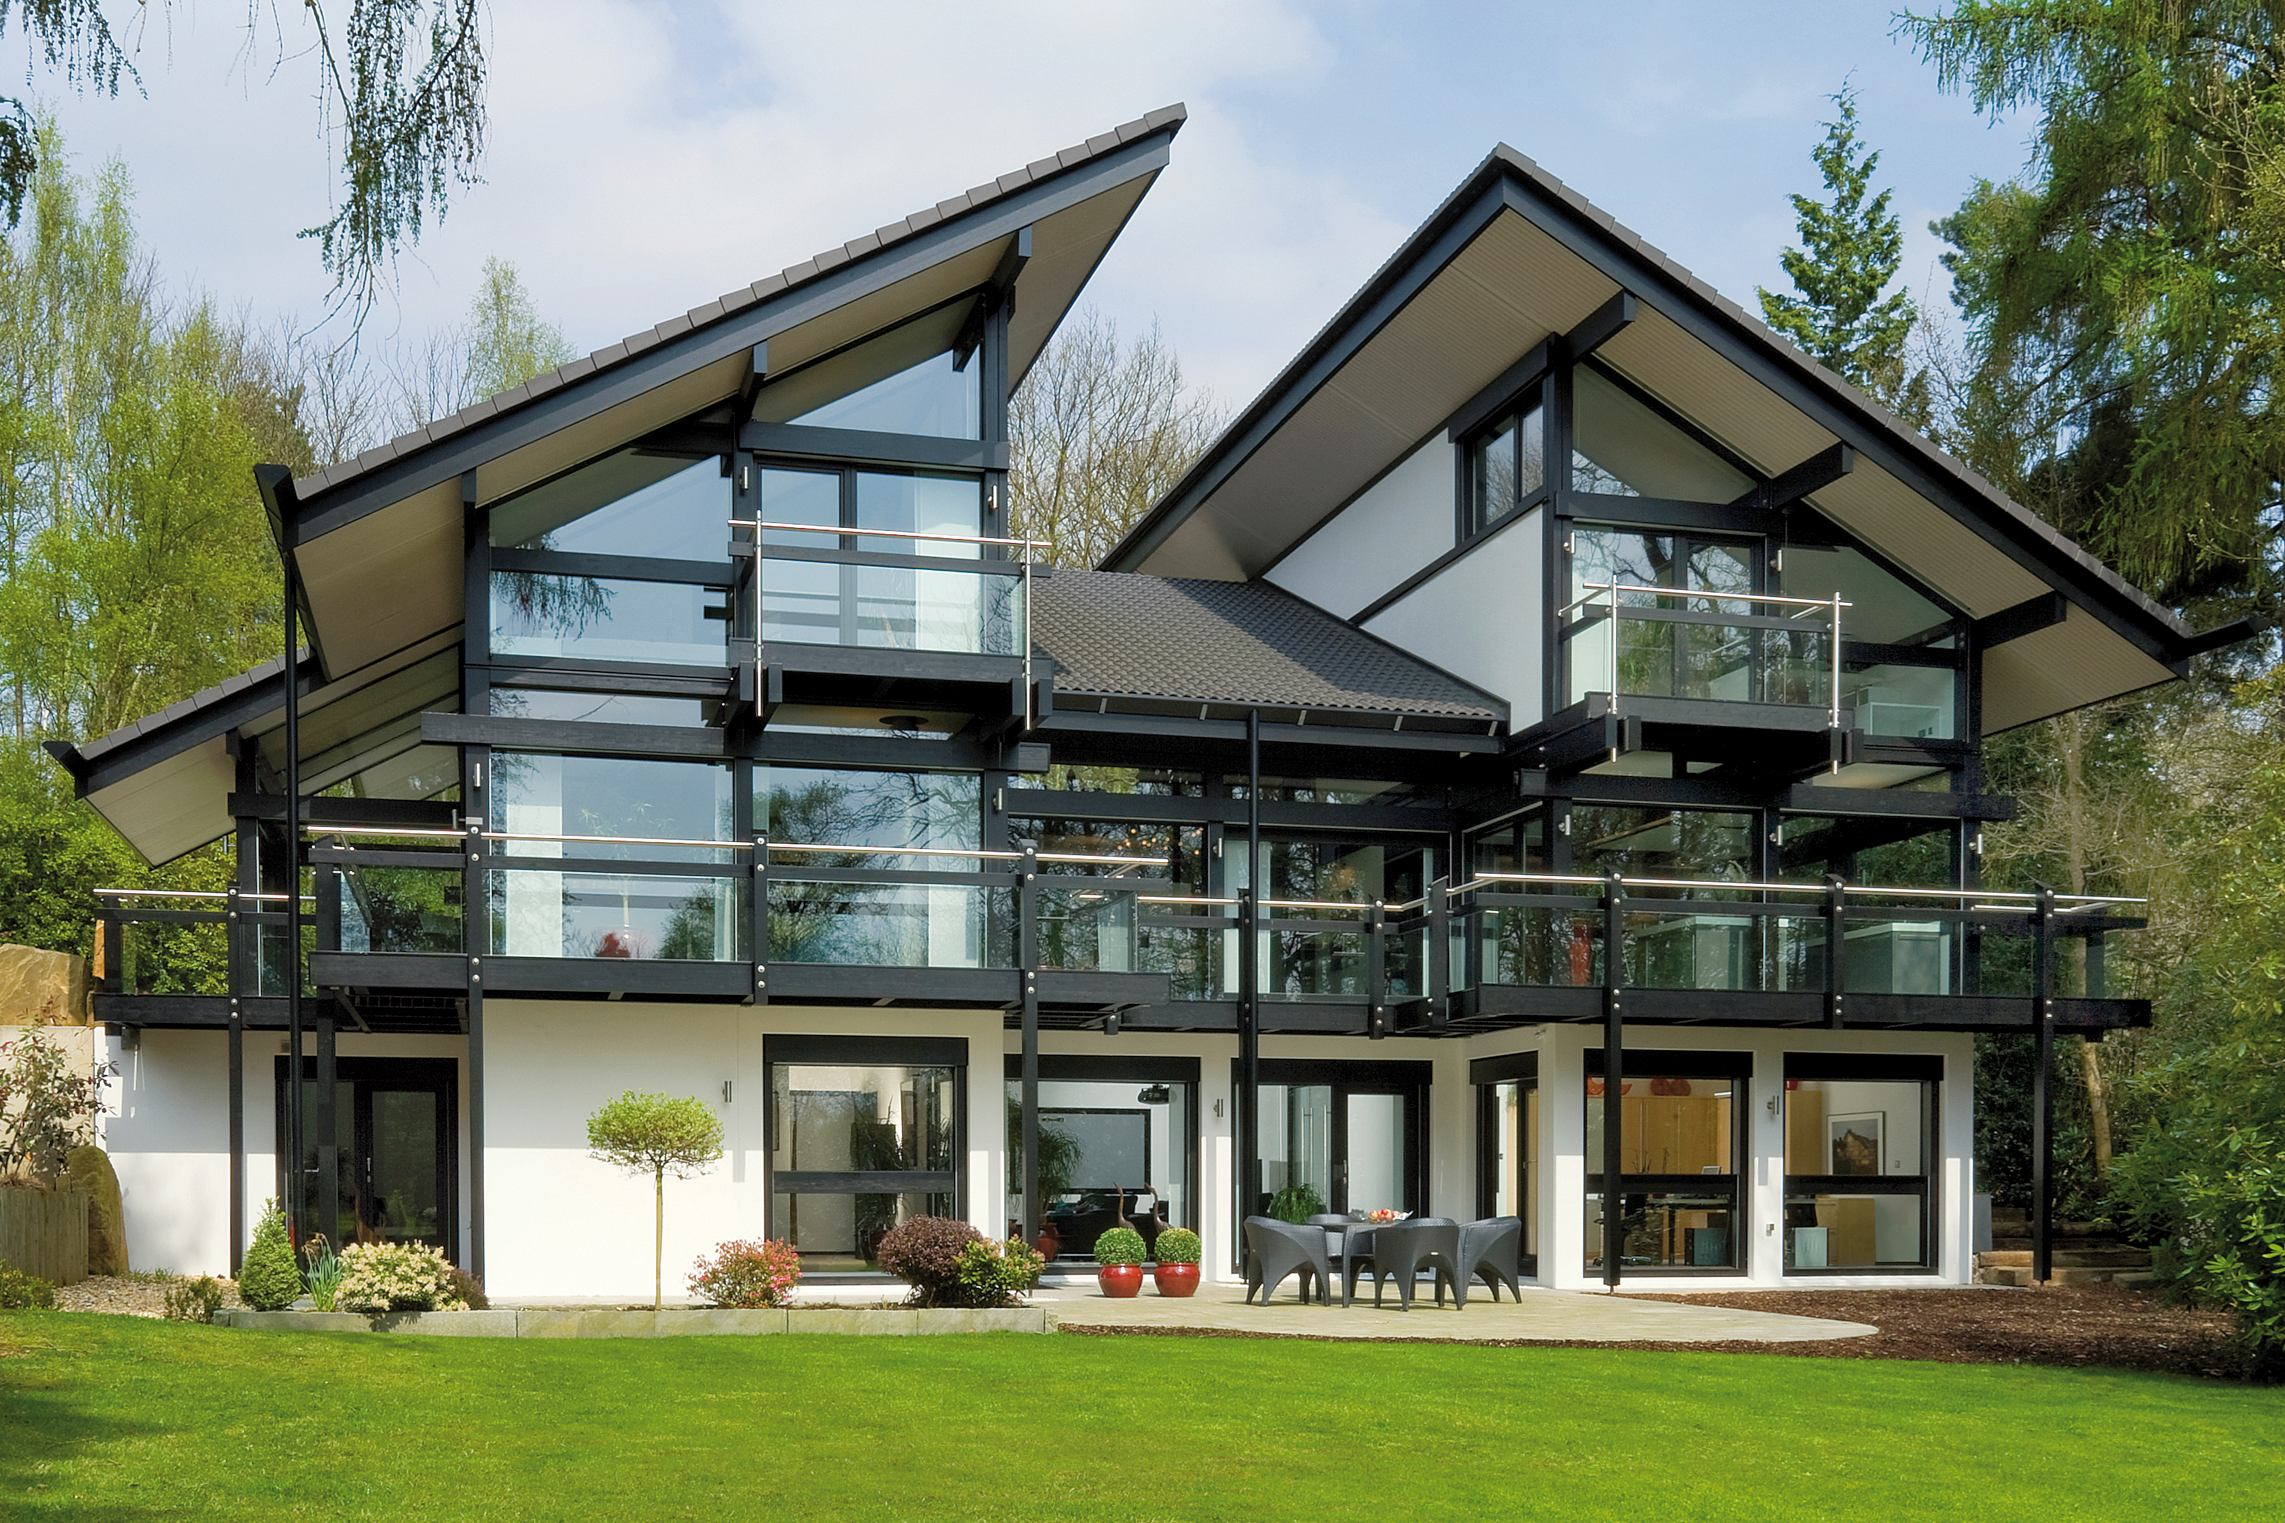 Germany Based Modular Home Supplier Sets Its Sights On